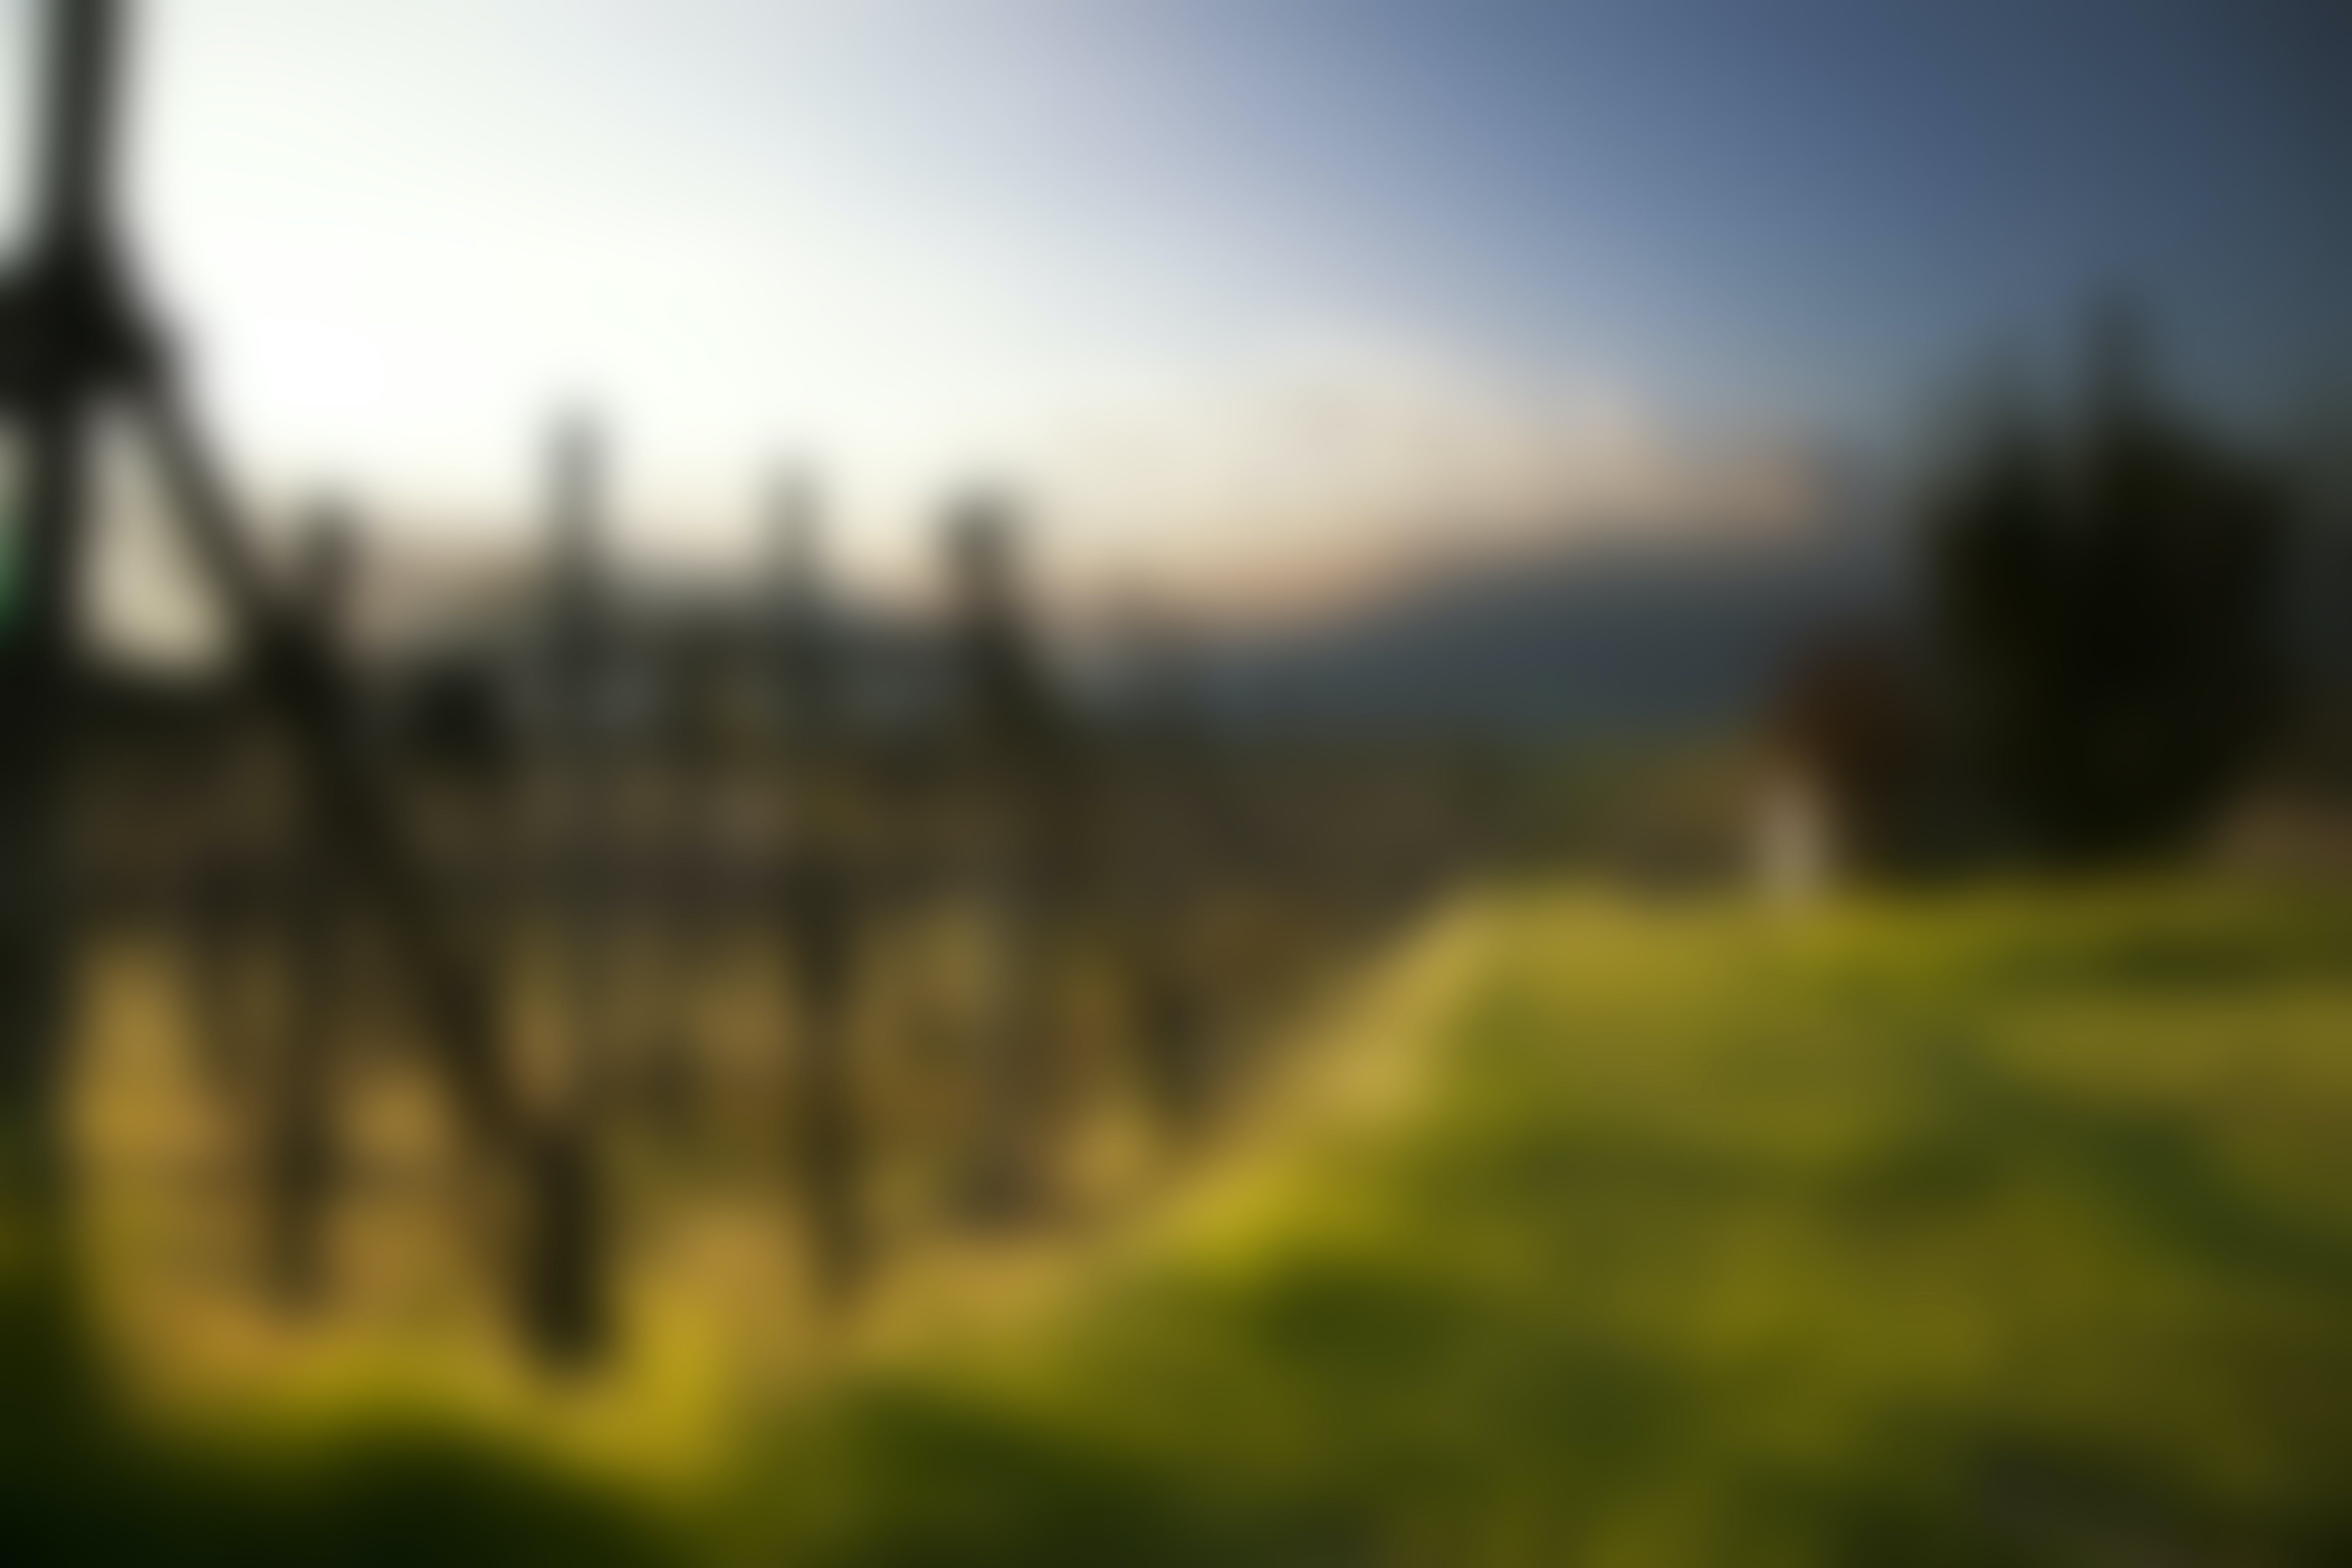 Free stock photo of background, blur, blurred